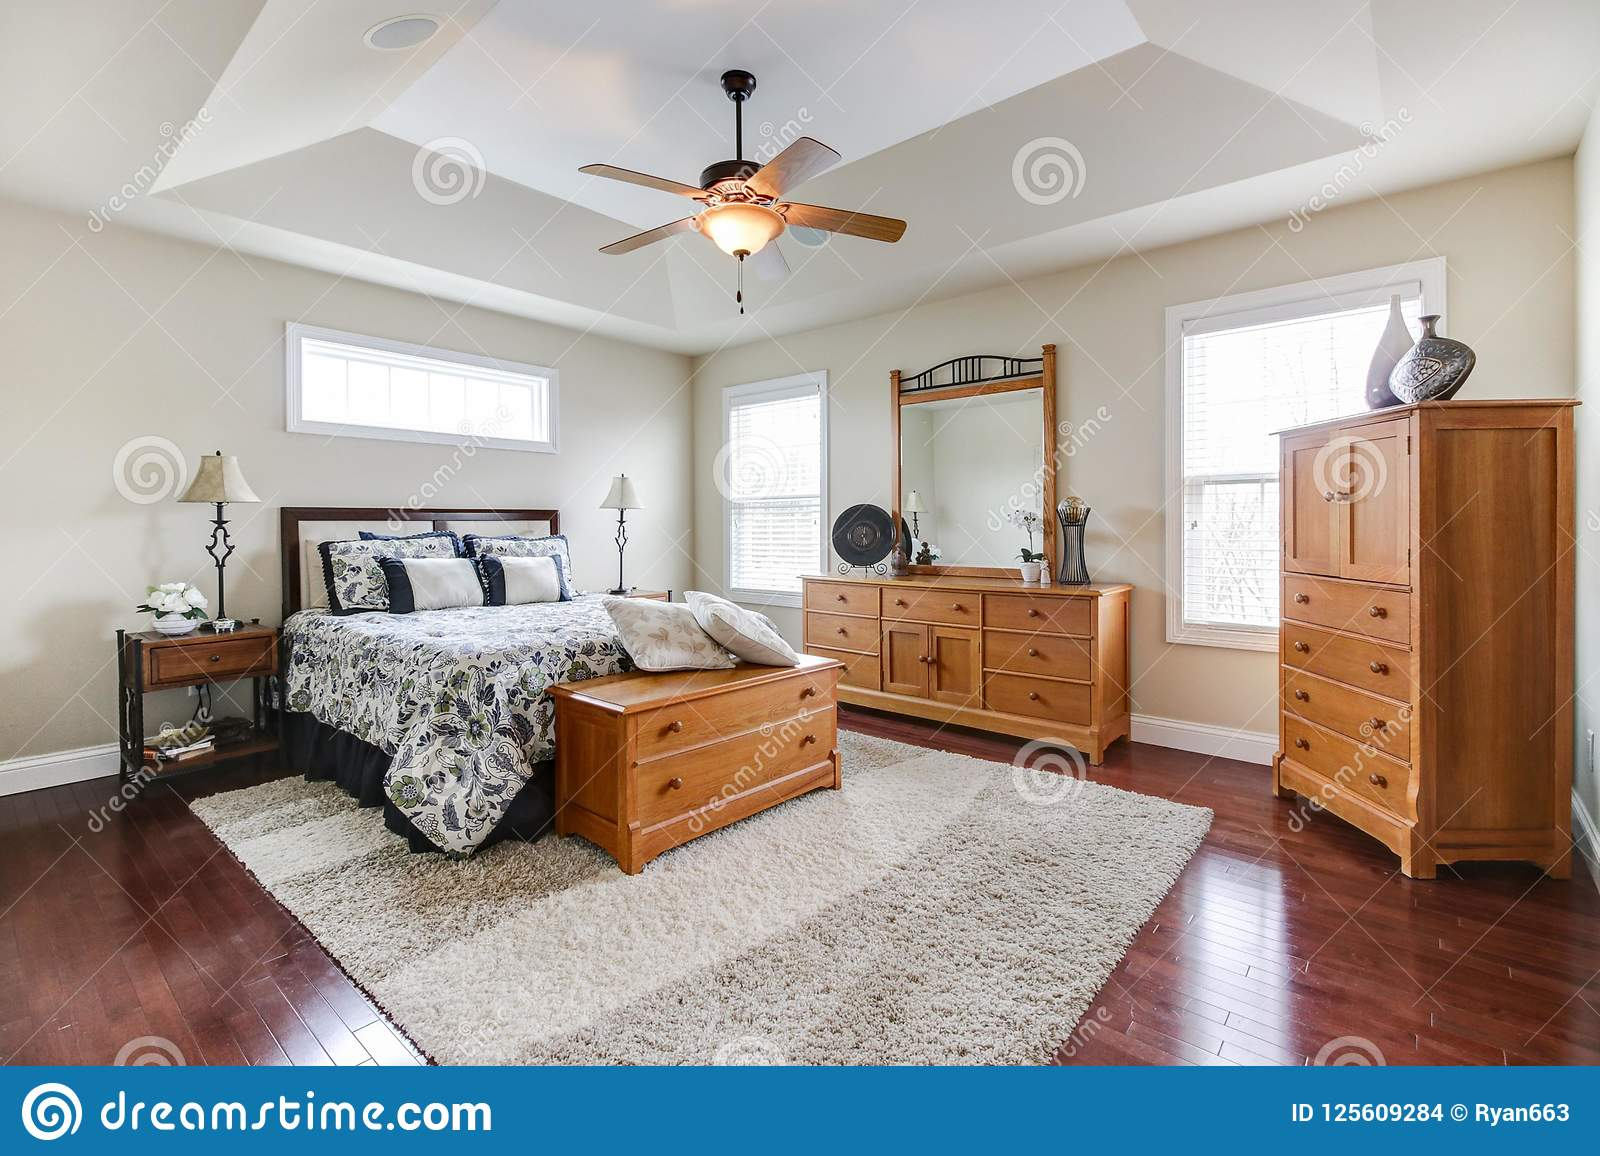 Nice Master Suite With Tray Ceililng Stock Photo - Image of ...